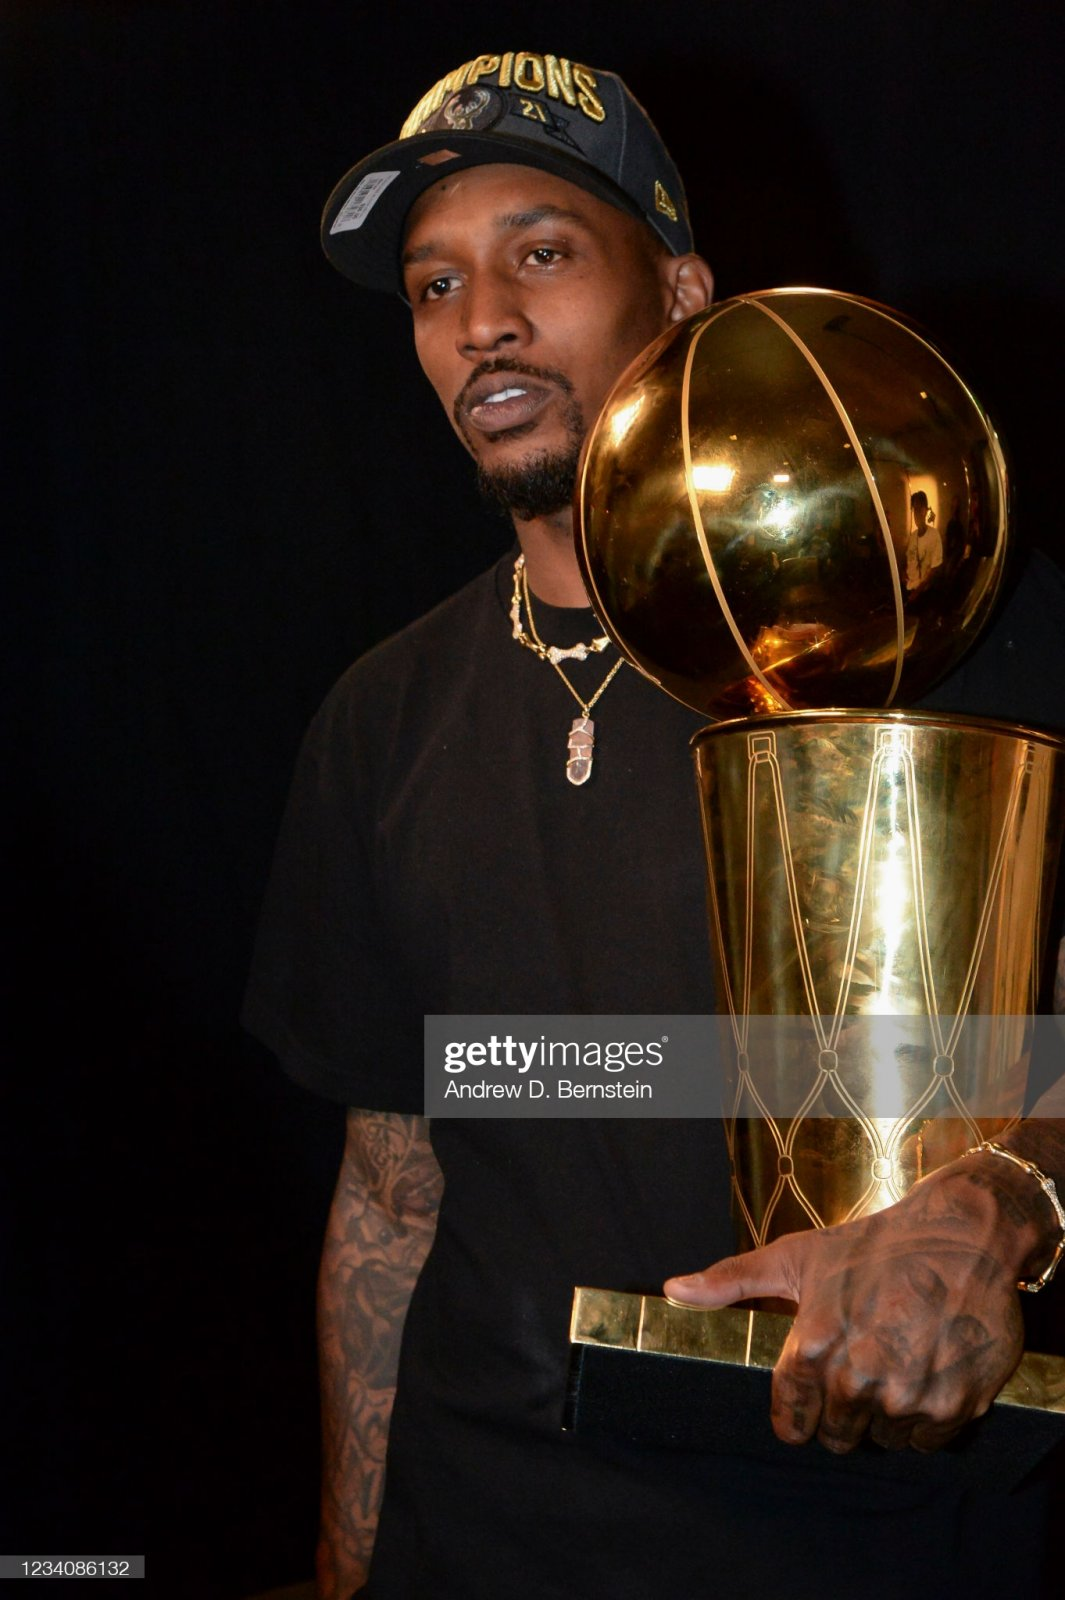 gettyimages-1234086132-2048x2048.jpg